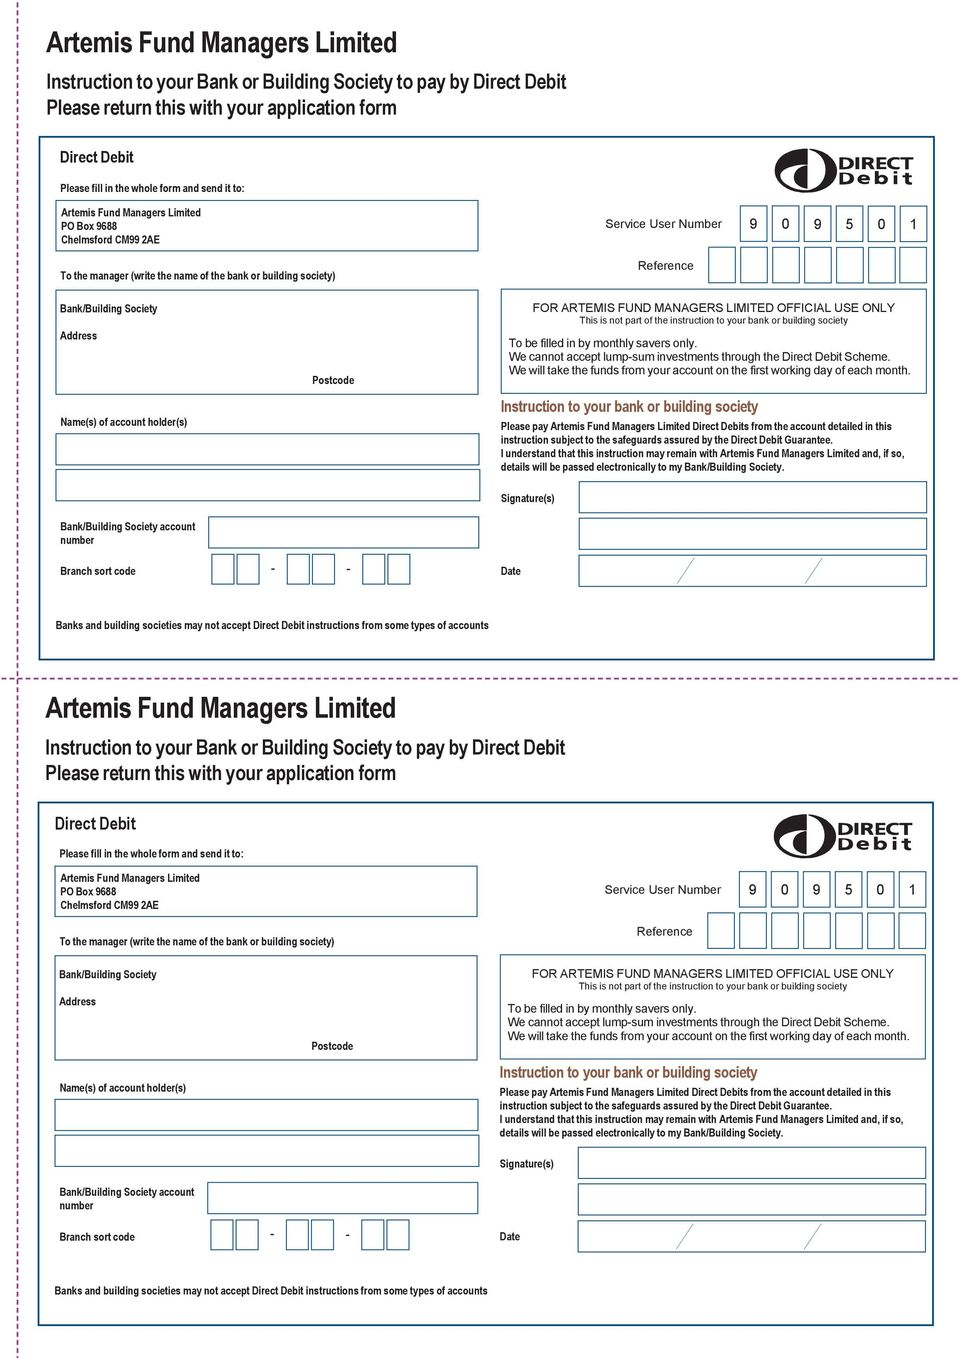 Address Name(s) of account holder(s) Postcode FOR ARTEMIS FUND MANAGERS LIMITED OFFICIAL USE ONLY This is not part of the instruction to your bank or building society To be filled in by monthly